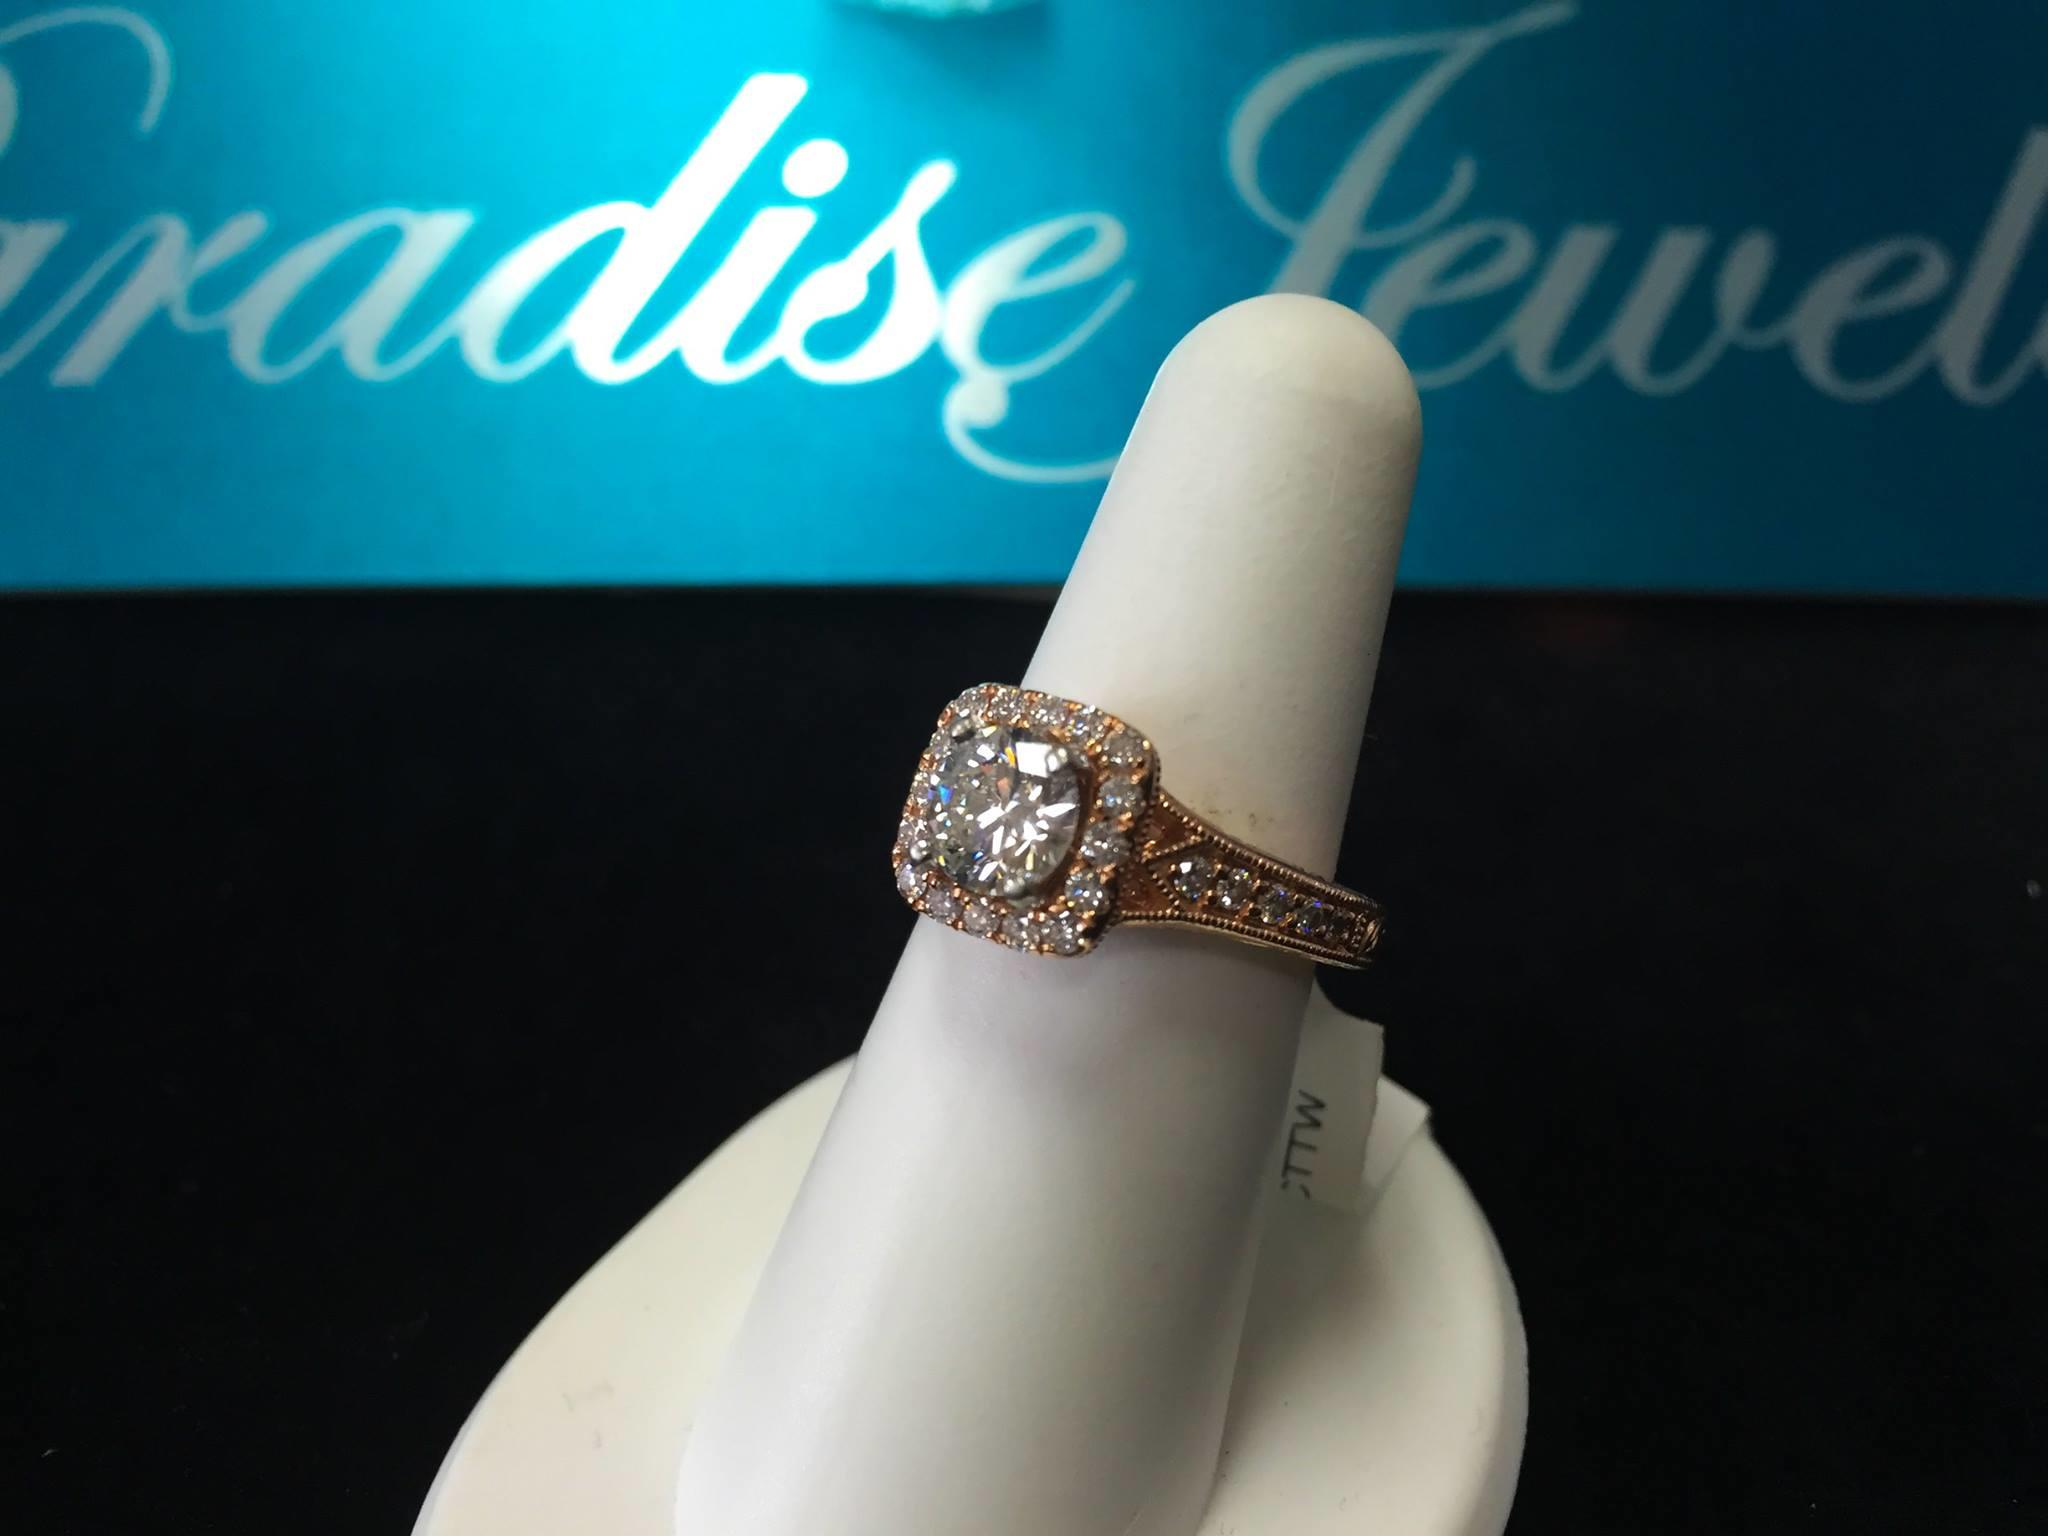 Paradise Jewelers 1616 Woodruff Rd B Greenville SC Jewelers MapQuest